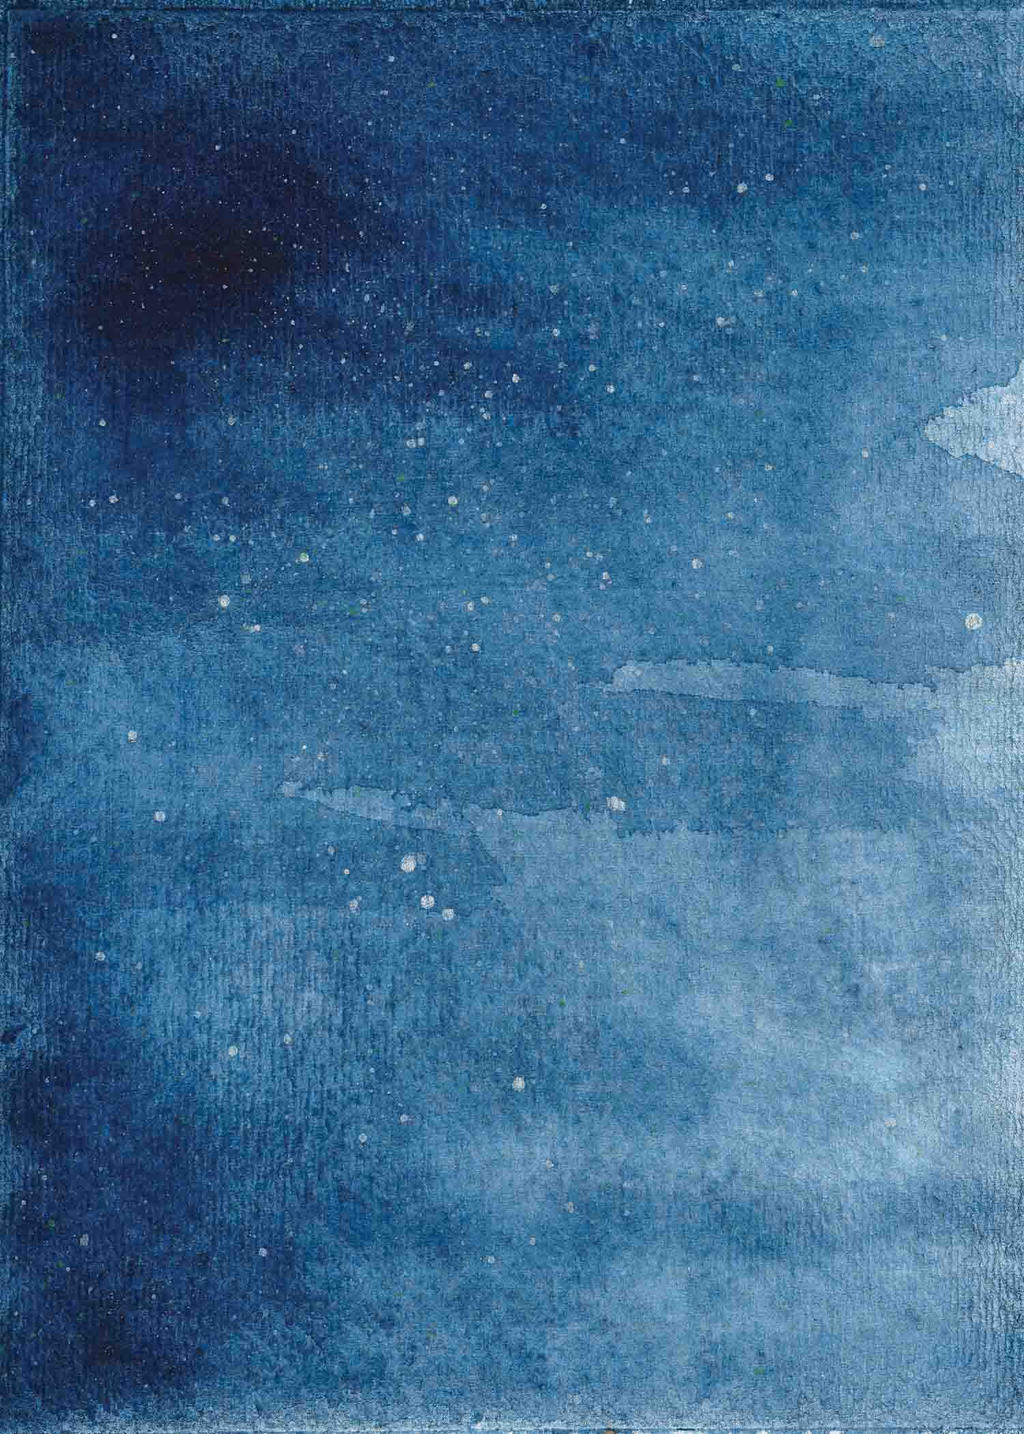 Blue Abstract Watercolor by Xandoval